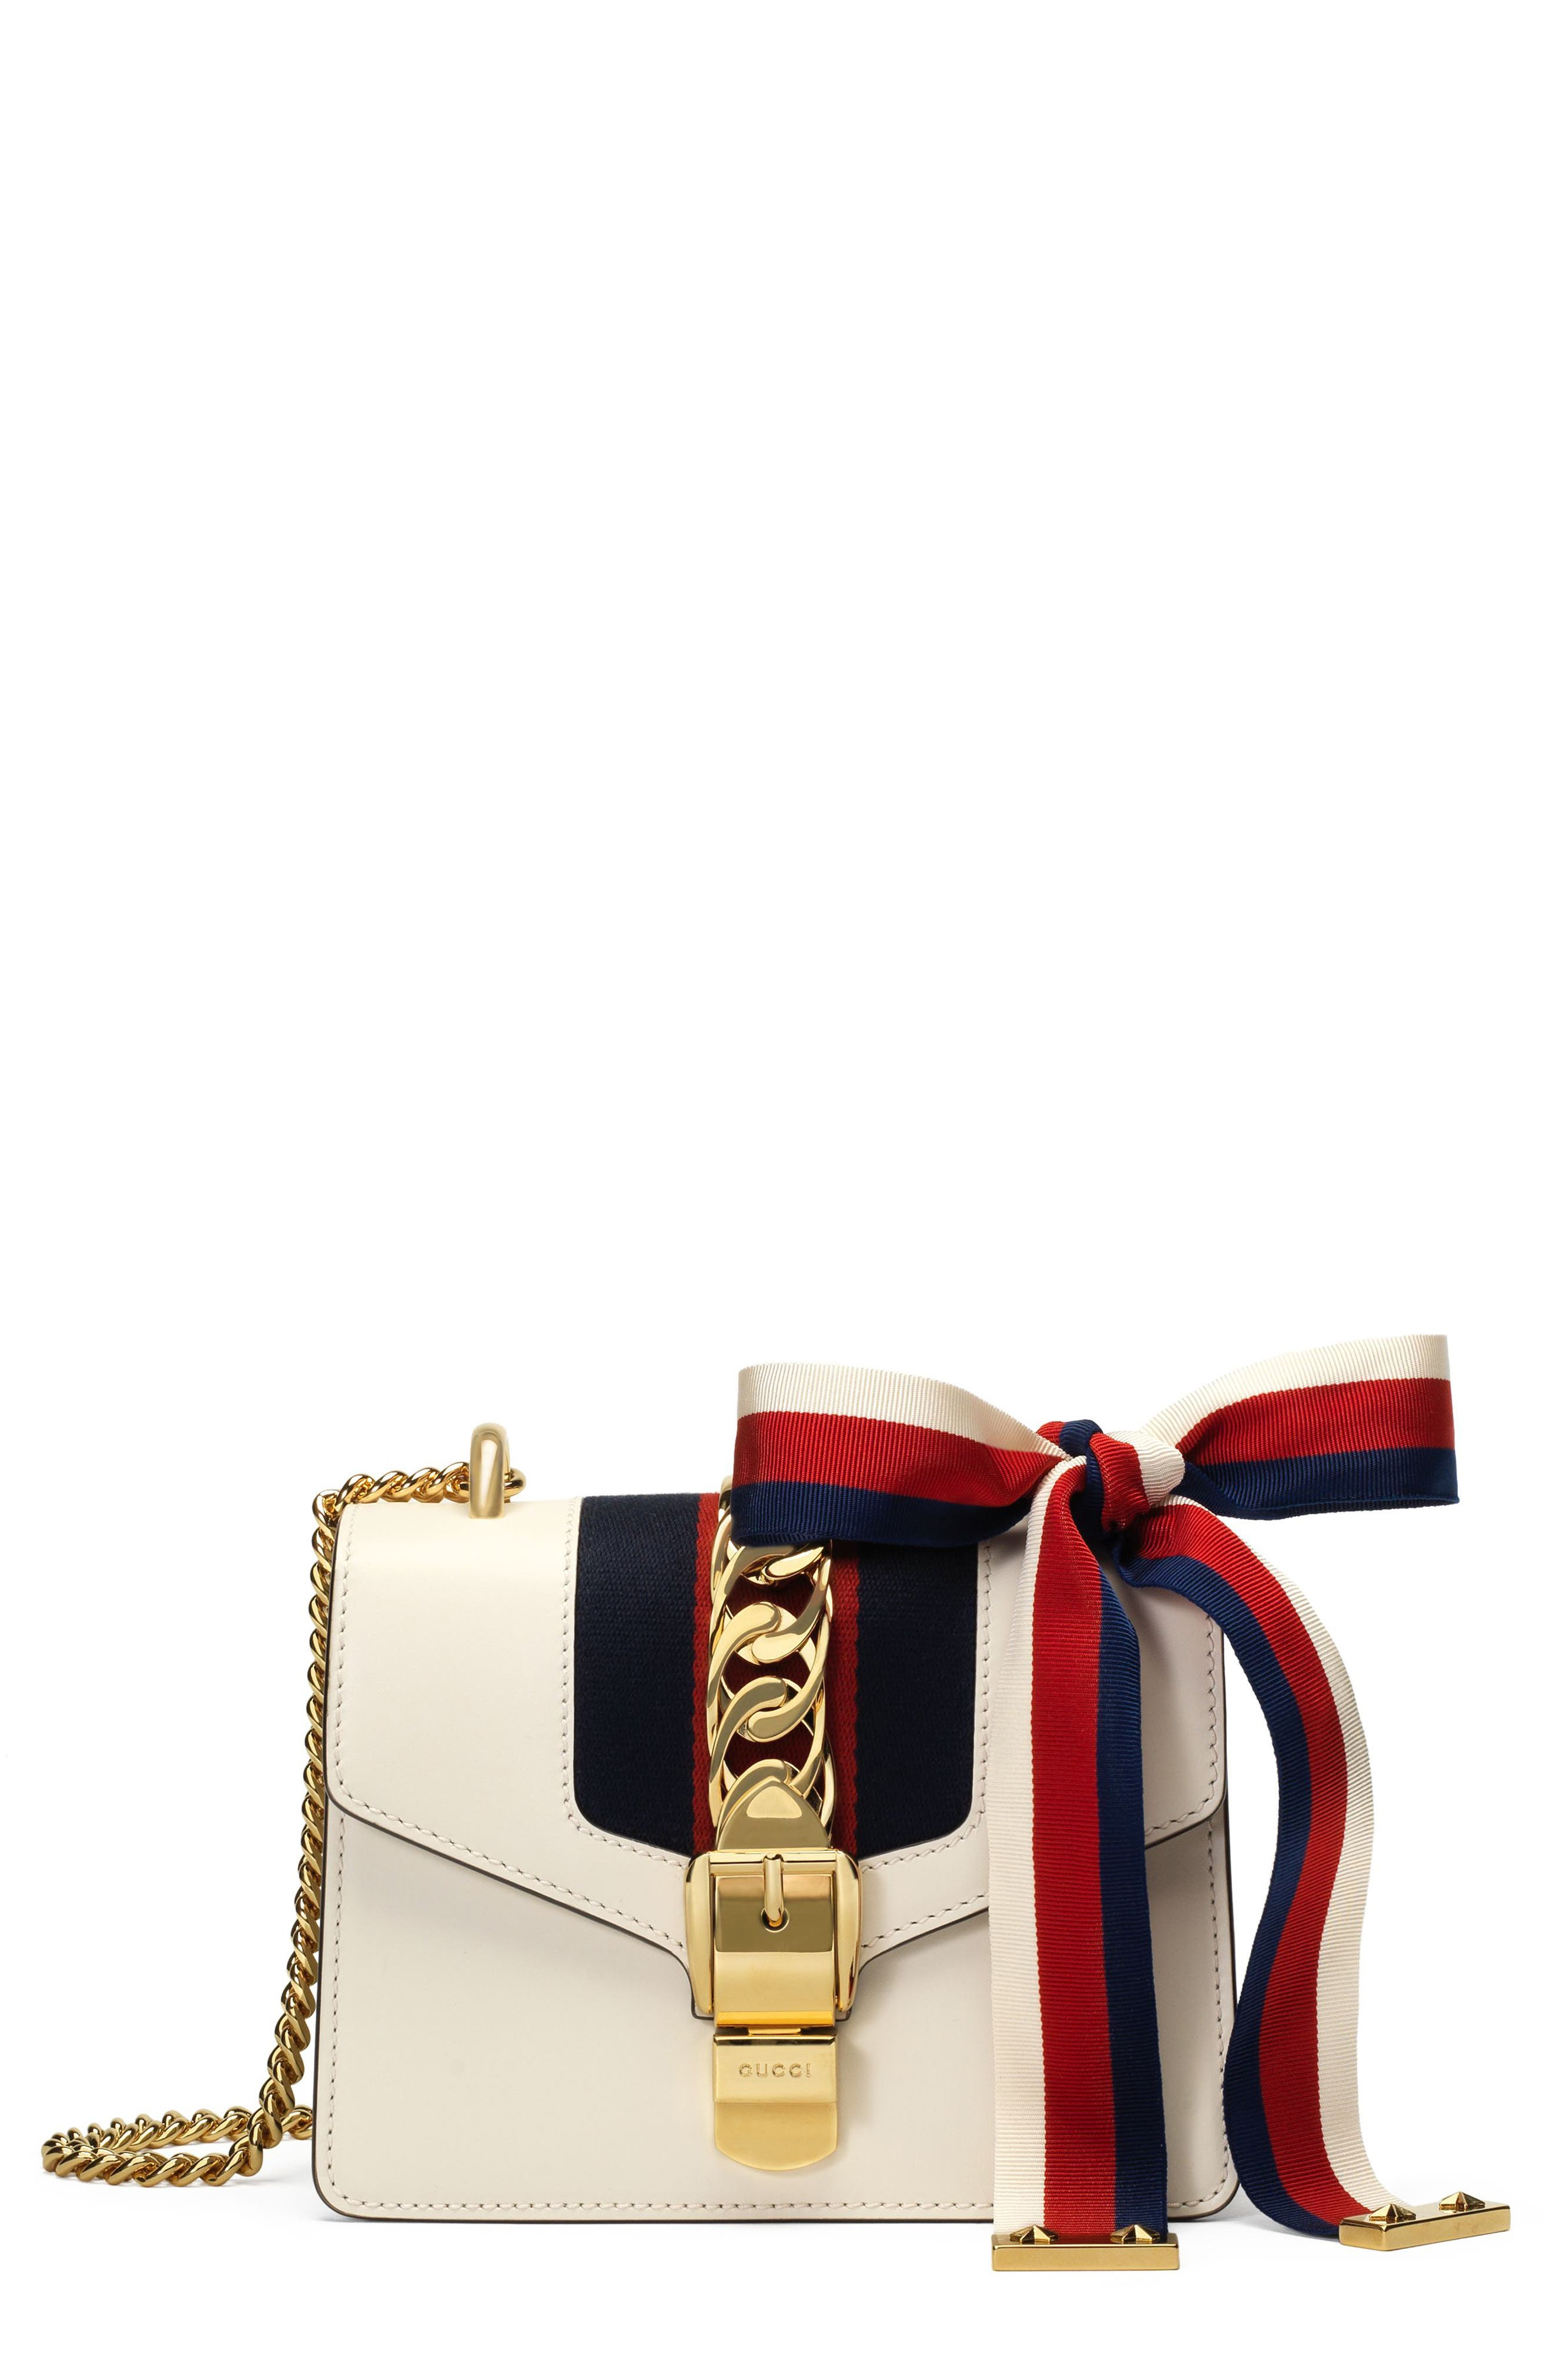 Alternate Image 1 Selected - Gucci Mini Sylvie Leather Shoulder Bag